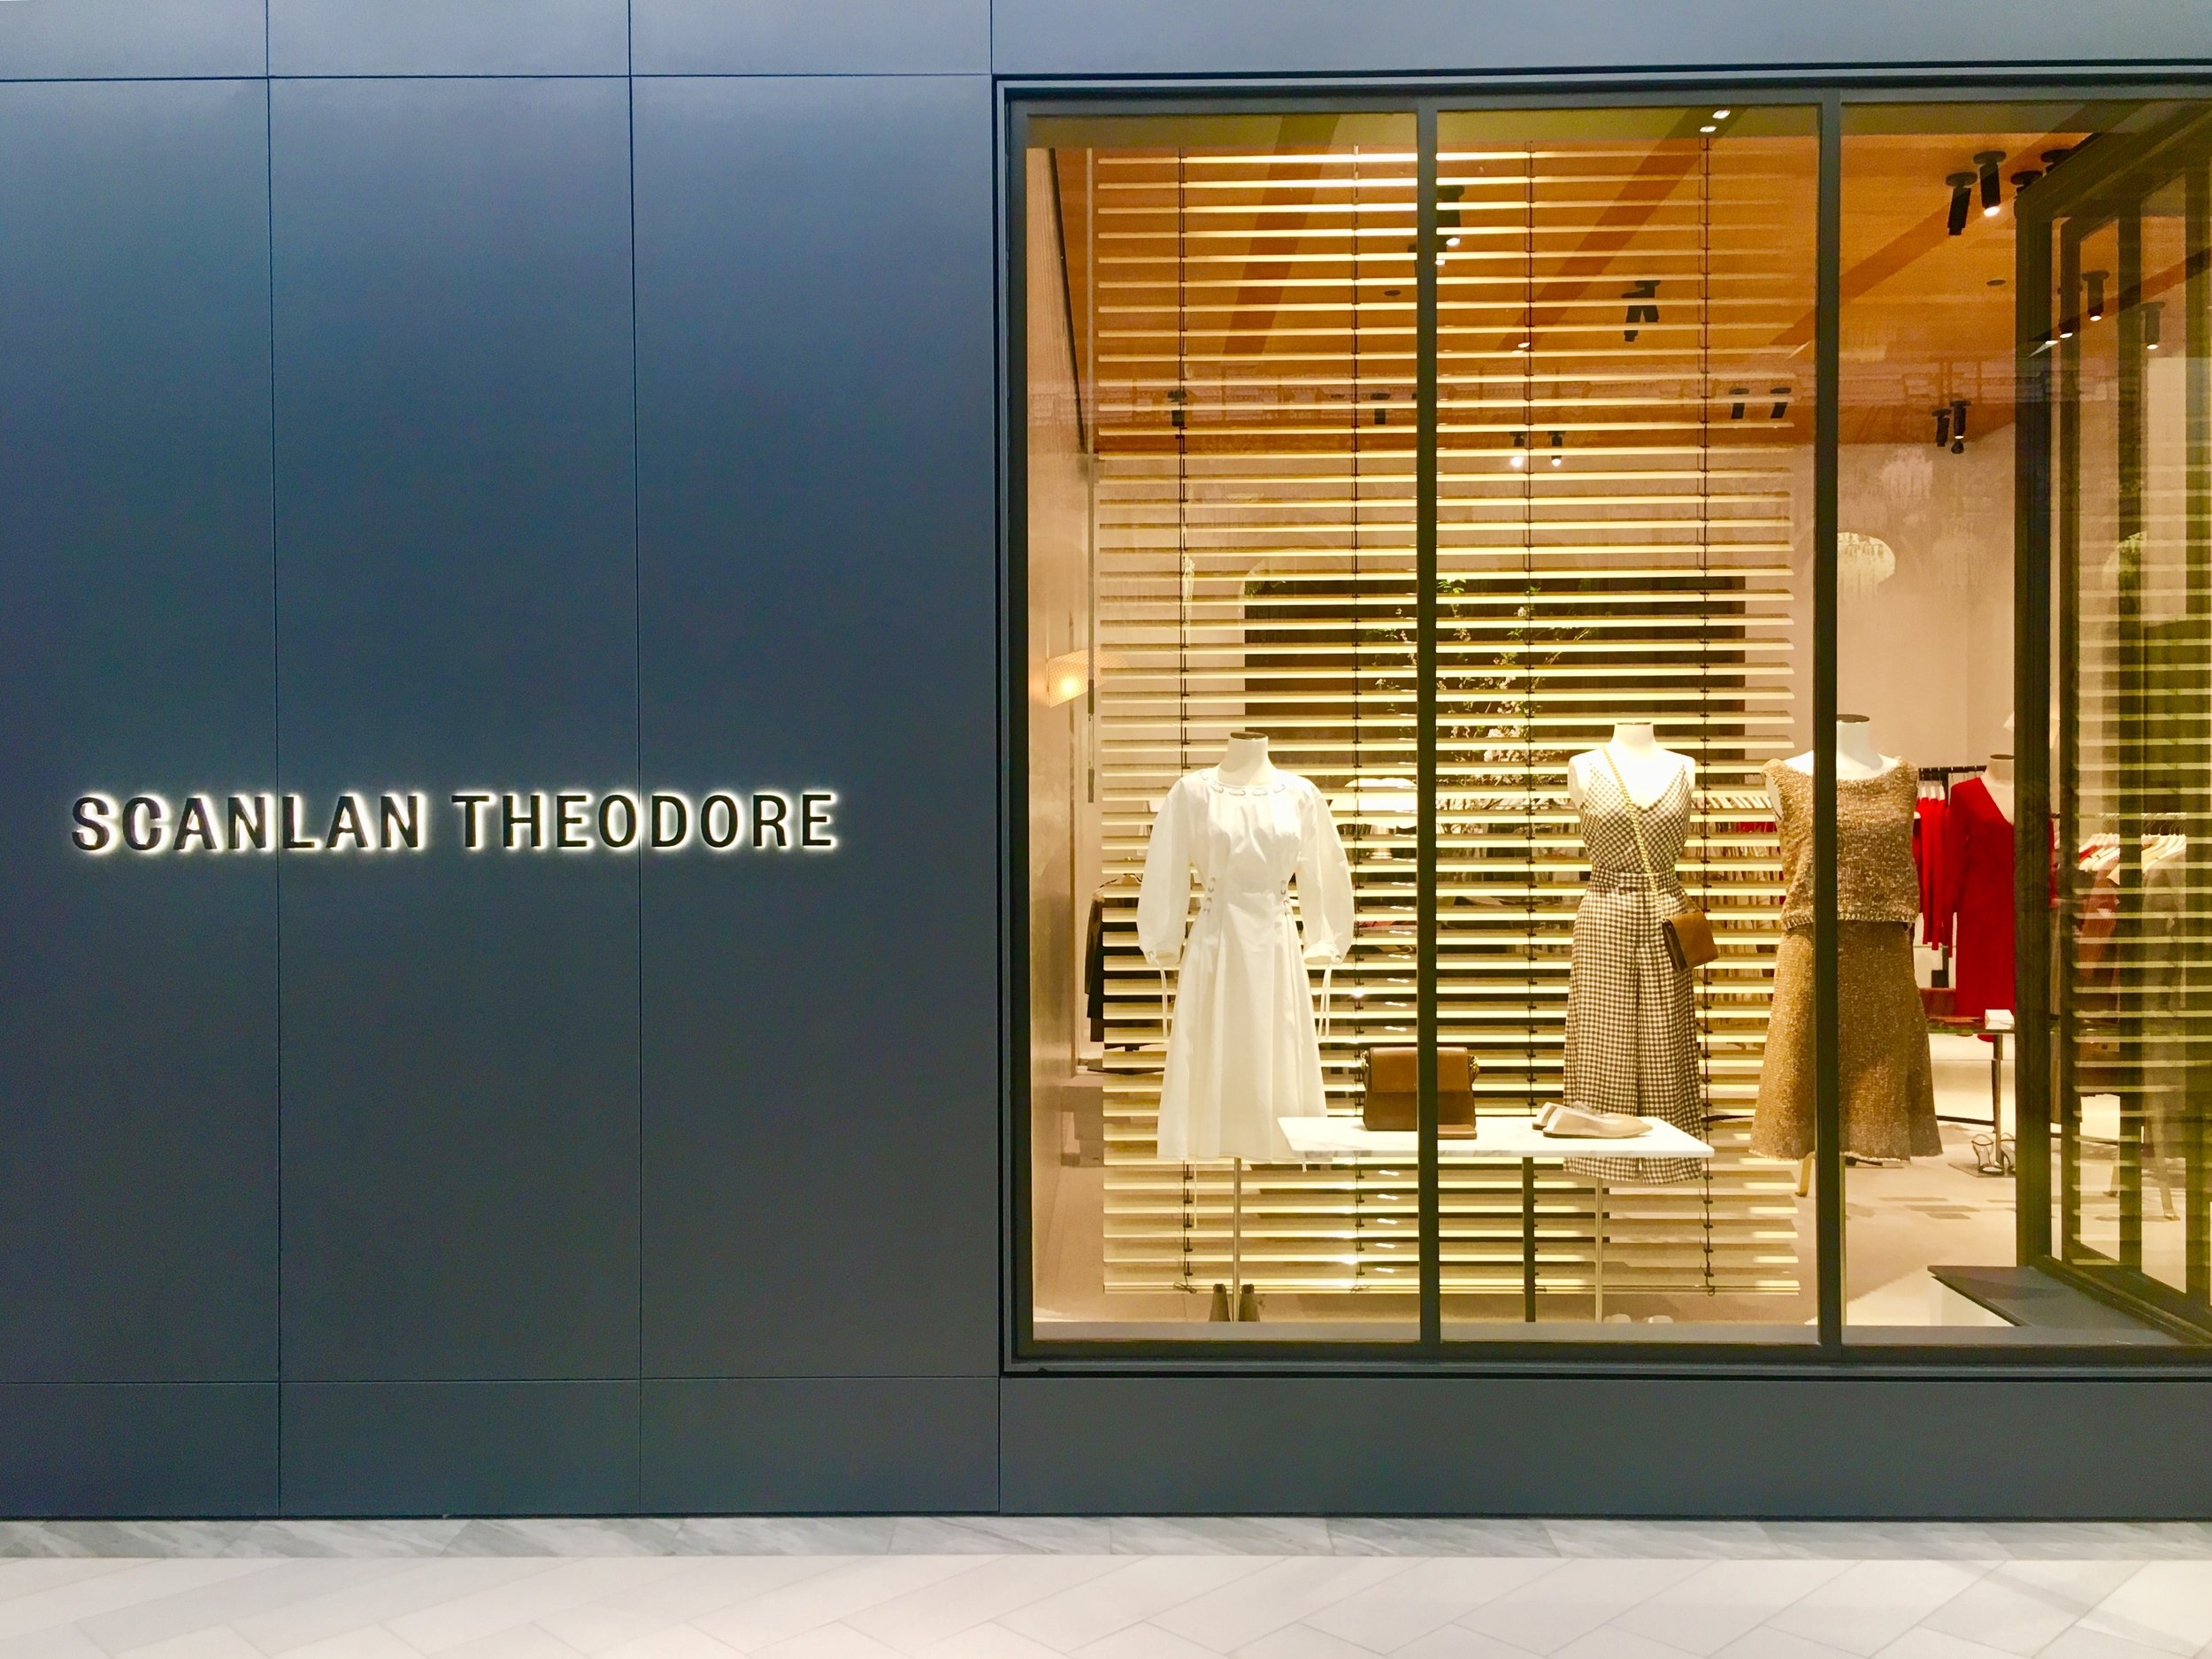 Scanlan Theodore is one of the many independent brands that have opened in Hudson Yards.